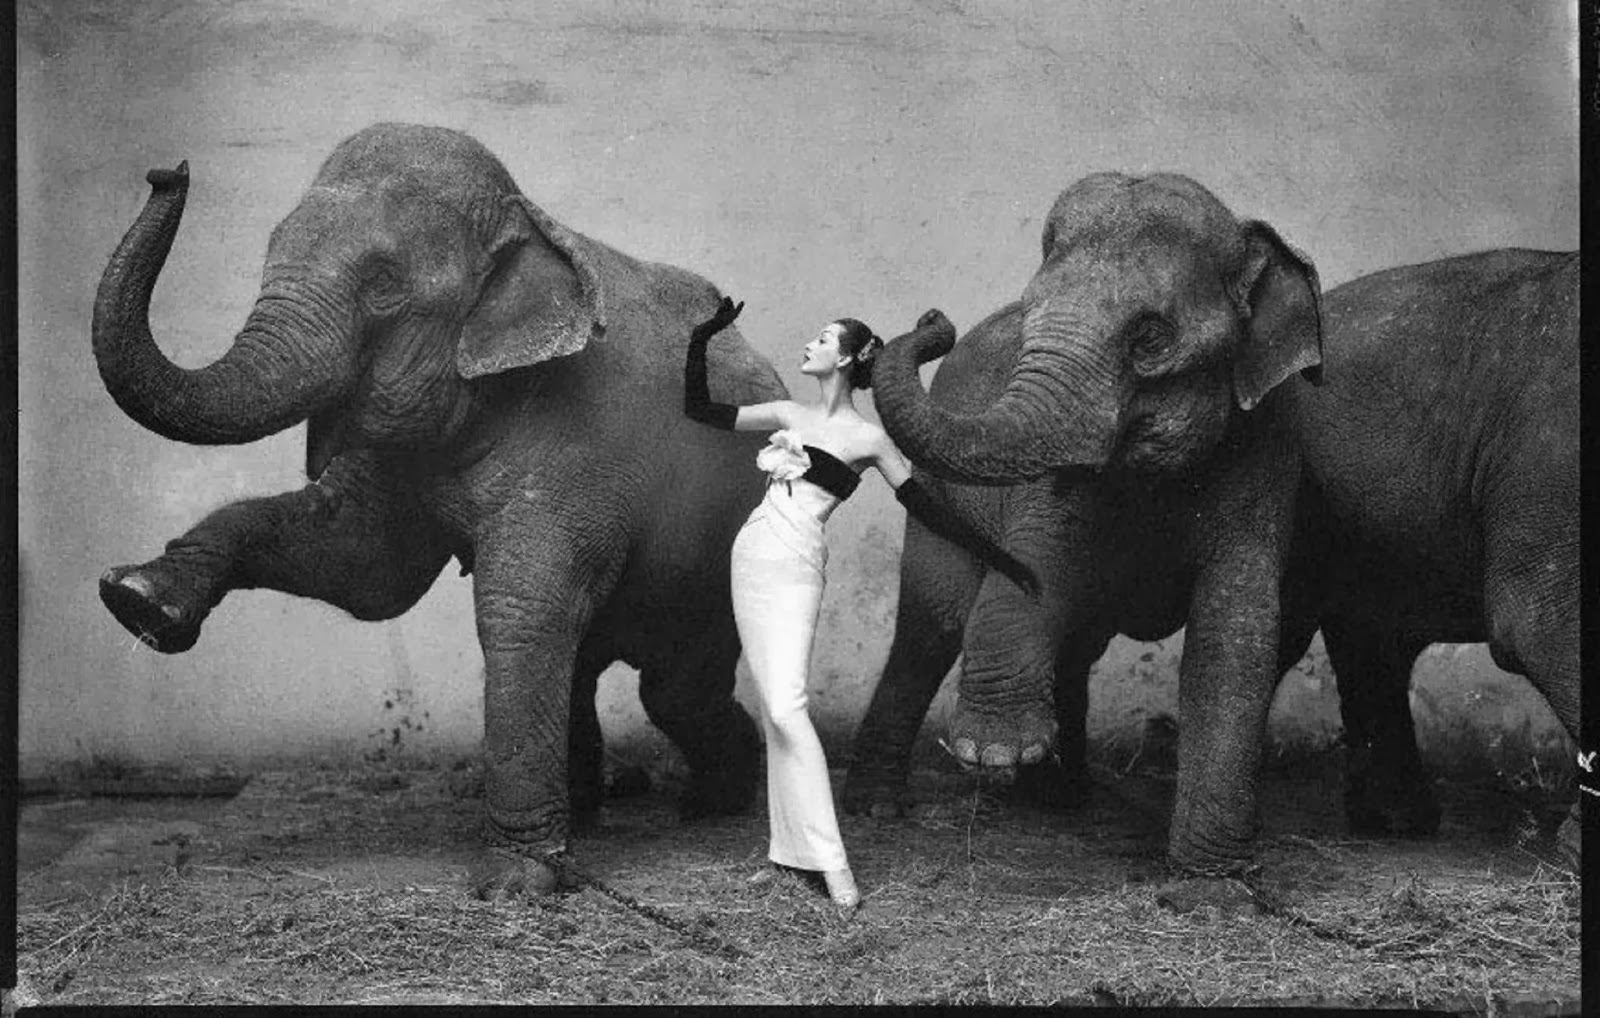 Domiva with Elephants, Richard Avedon